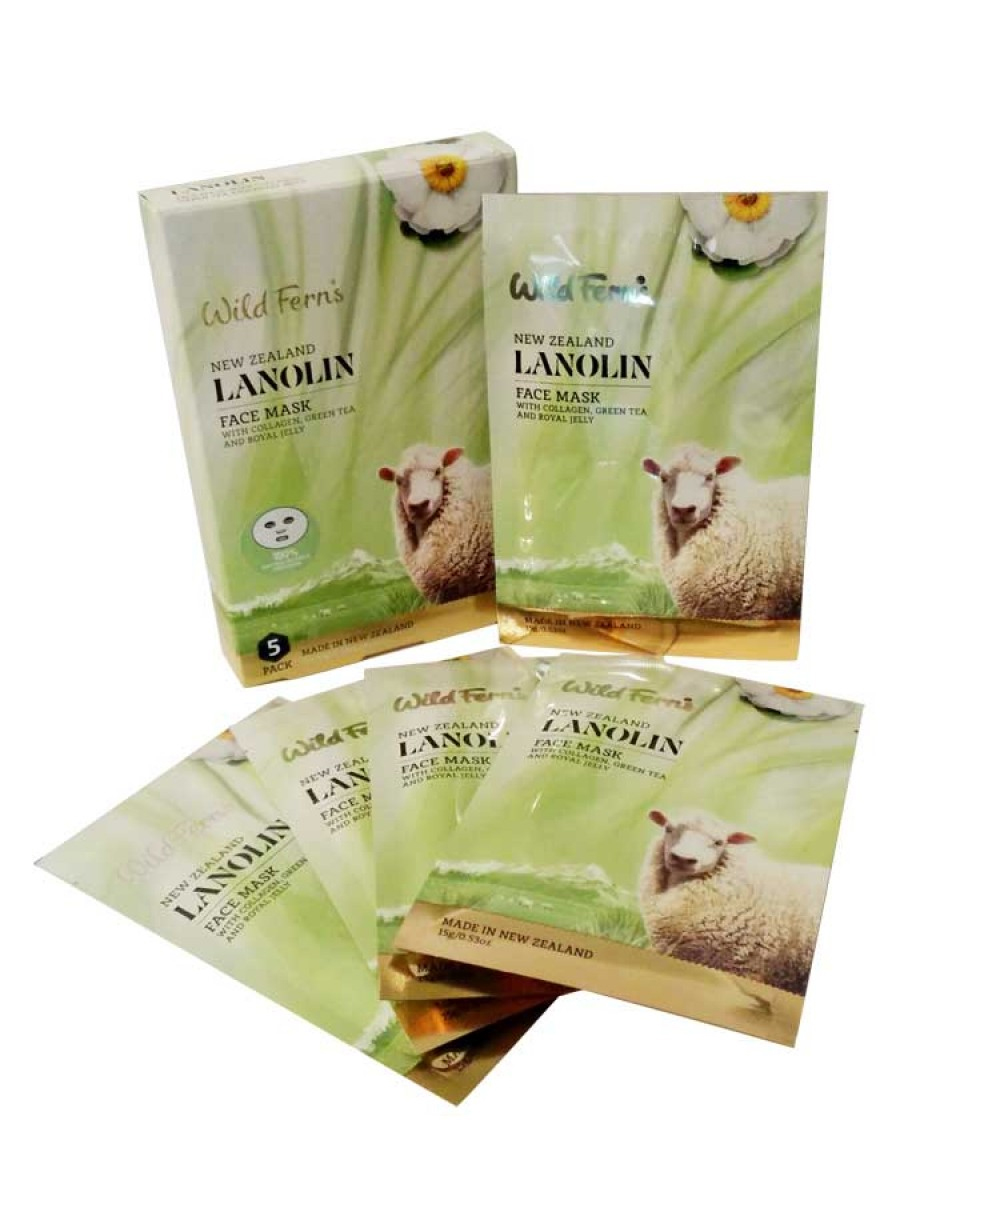 WILD FERNS LANOLIN BAMBOO FACE MASK WITH COLLAGEN 5 PACK